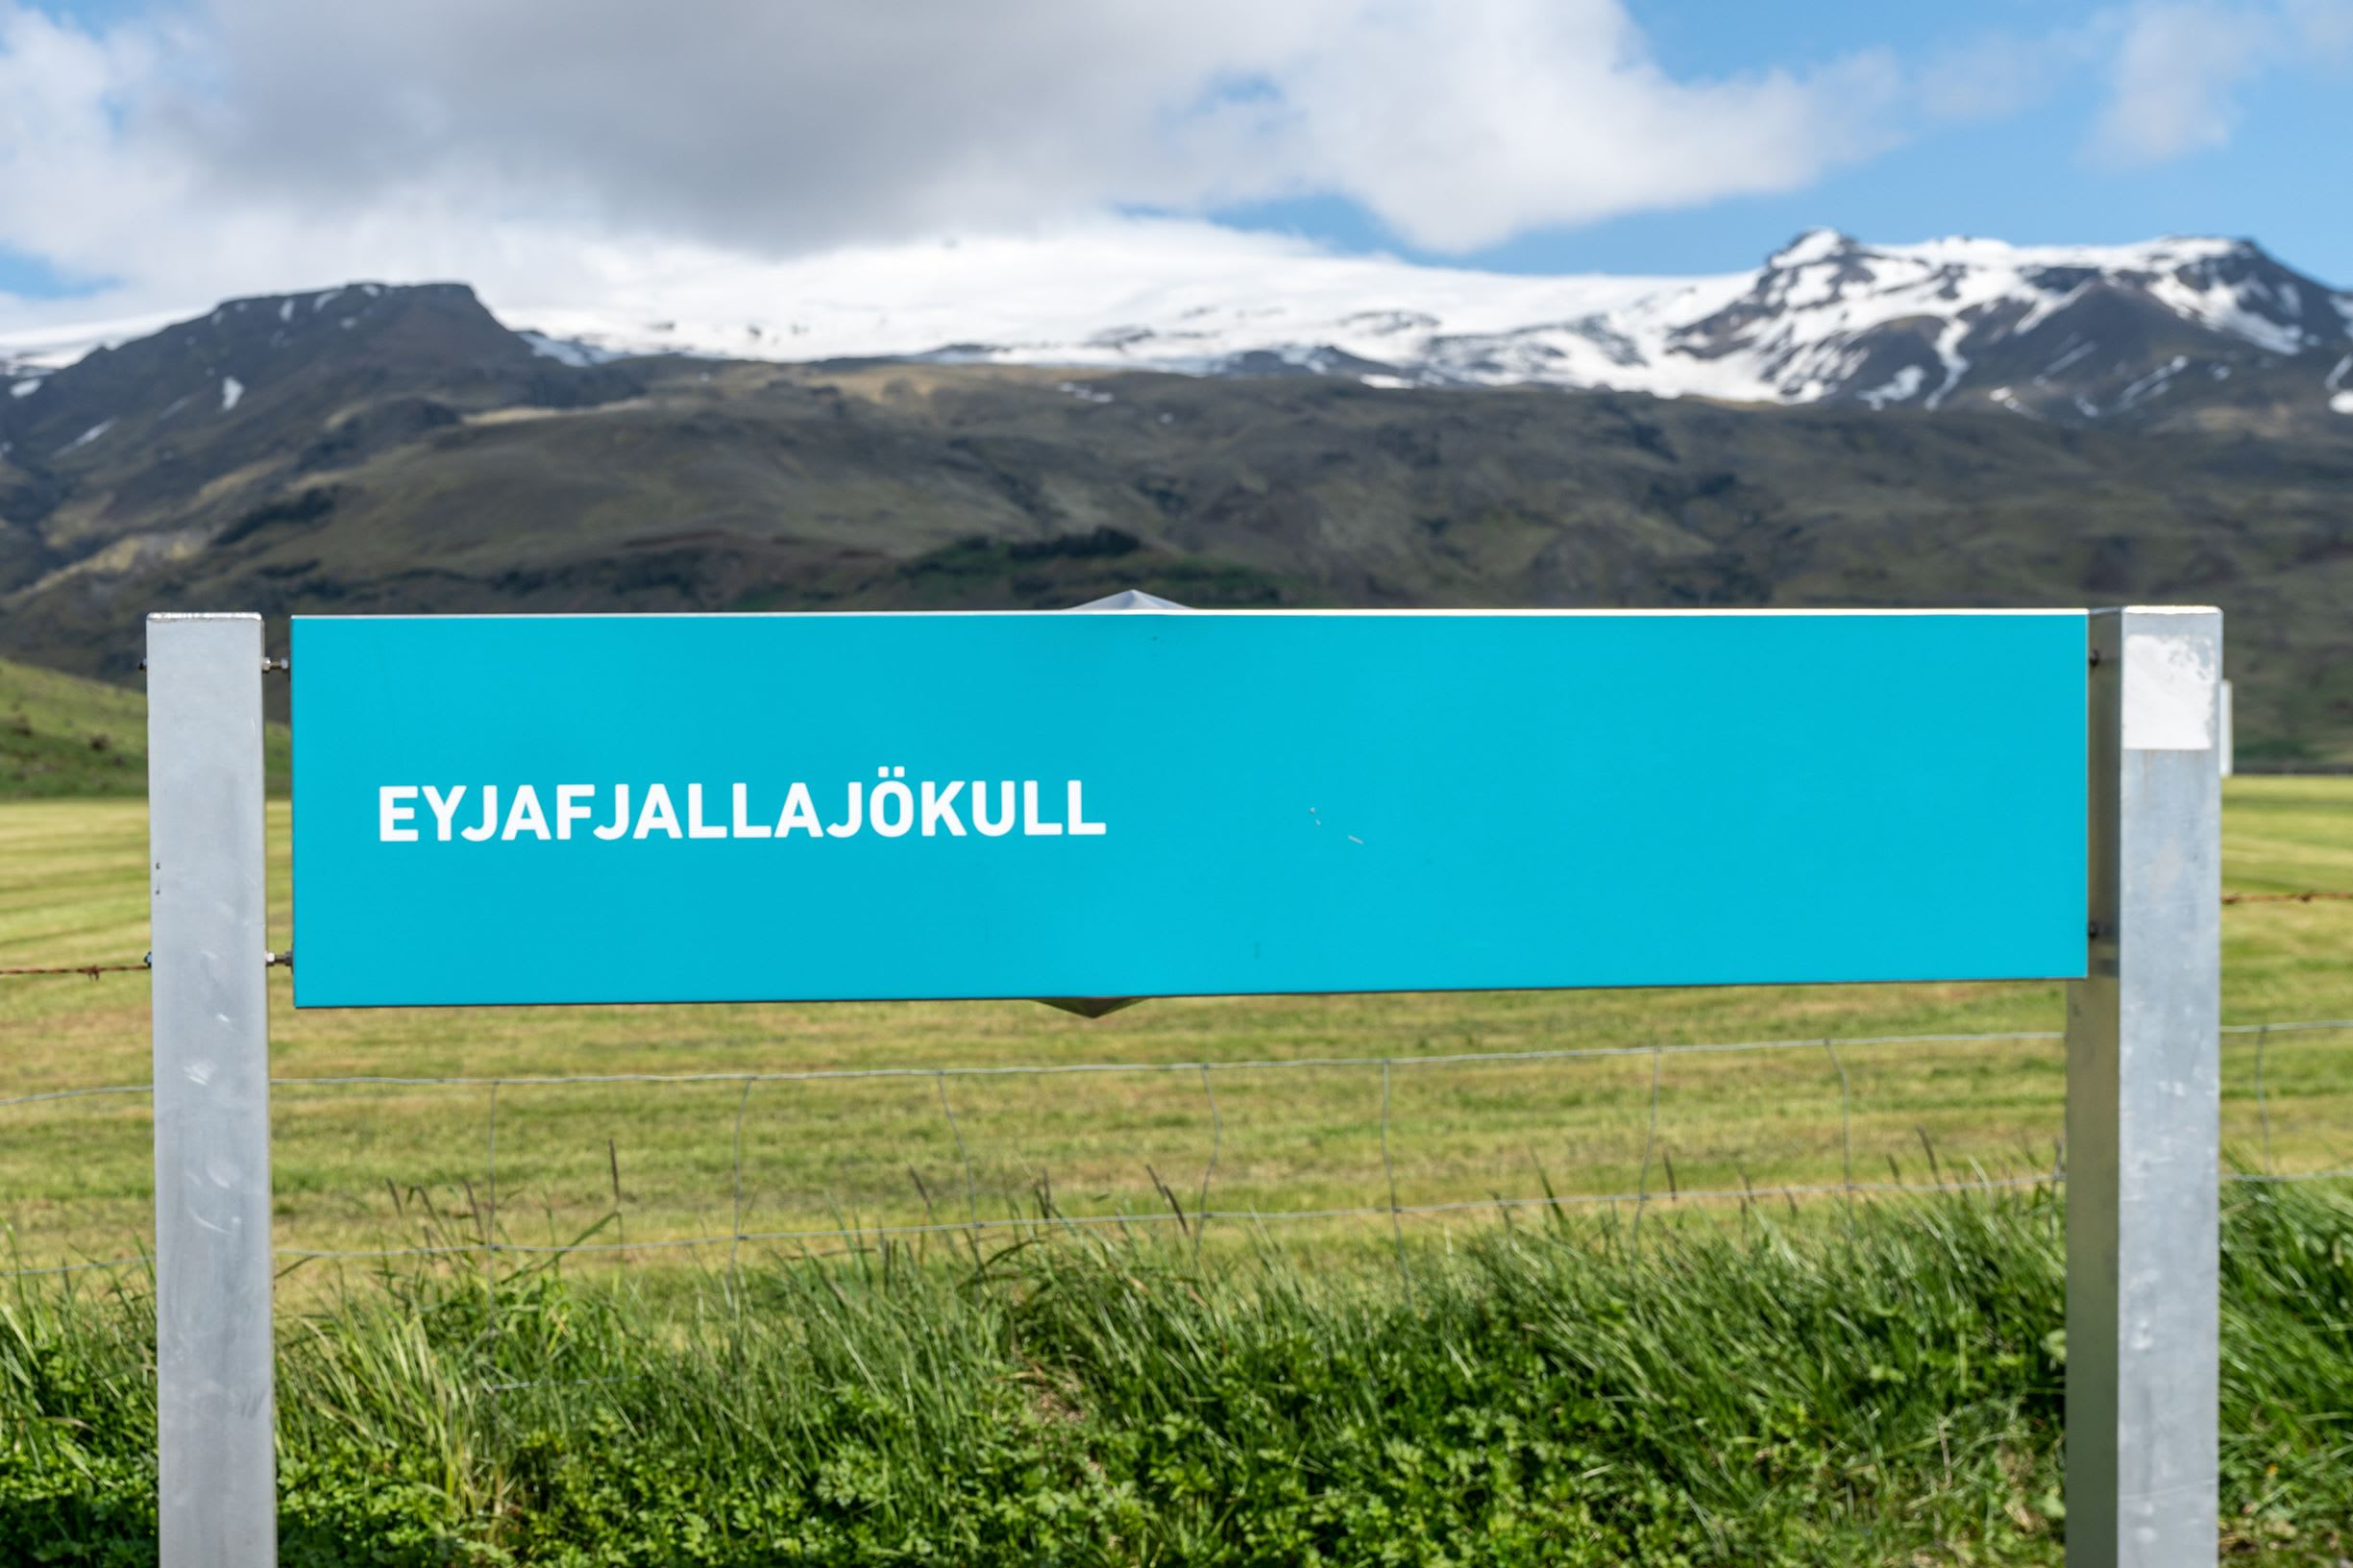 a blue sign that reads 'Eyjafjallajokull', the name of the famous volcano which was responsible for the 2010 eruption. The sign is positioned within the Icelandic nature